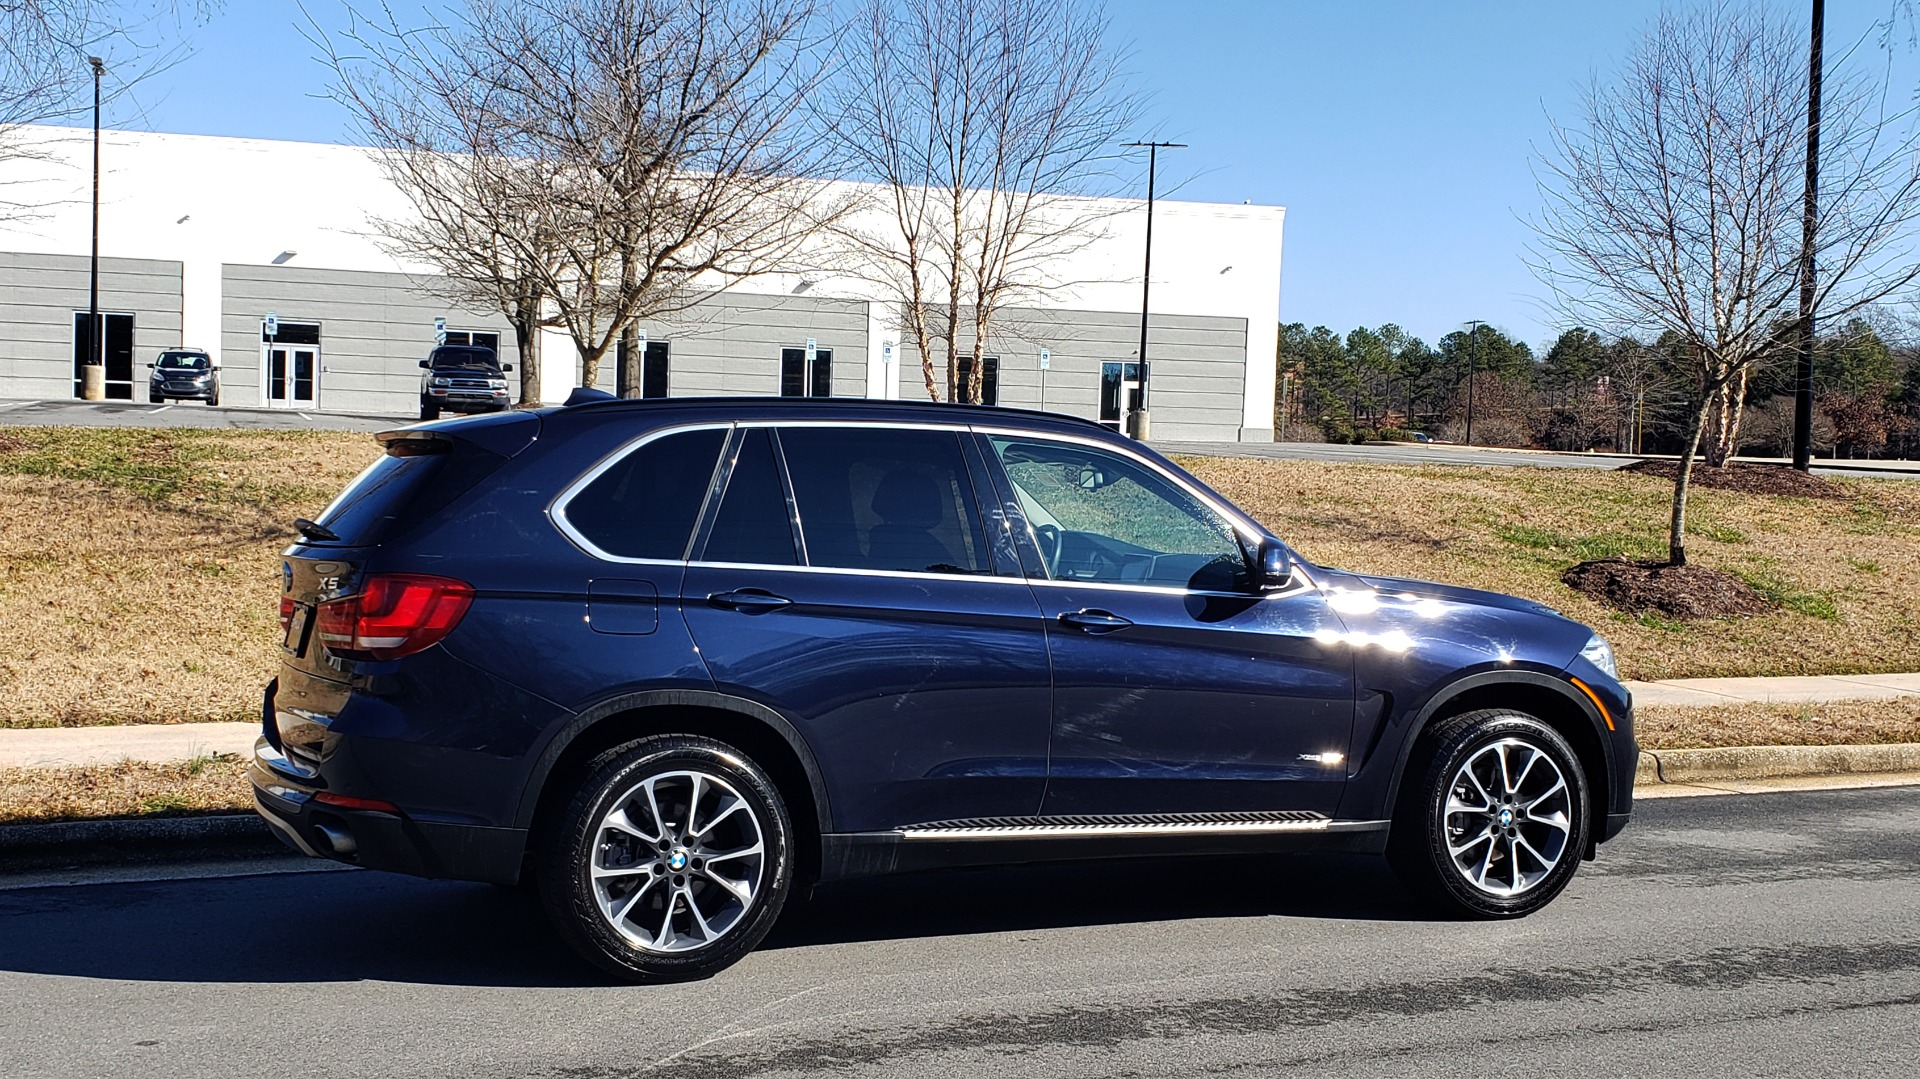 Used 2015 BMW X5 XDRIVE35I PREMIUM / NAV / XLINE / CLD WTHR / DRVR ASST / REARVIEW for sale $24,995 at Formula Imports in Charlotte NC 28227 8